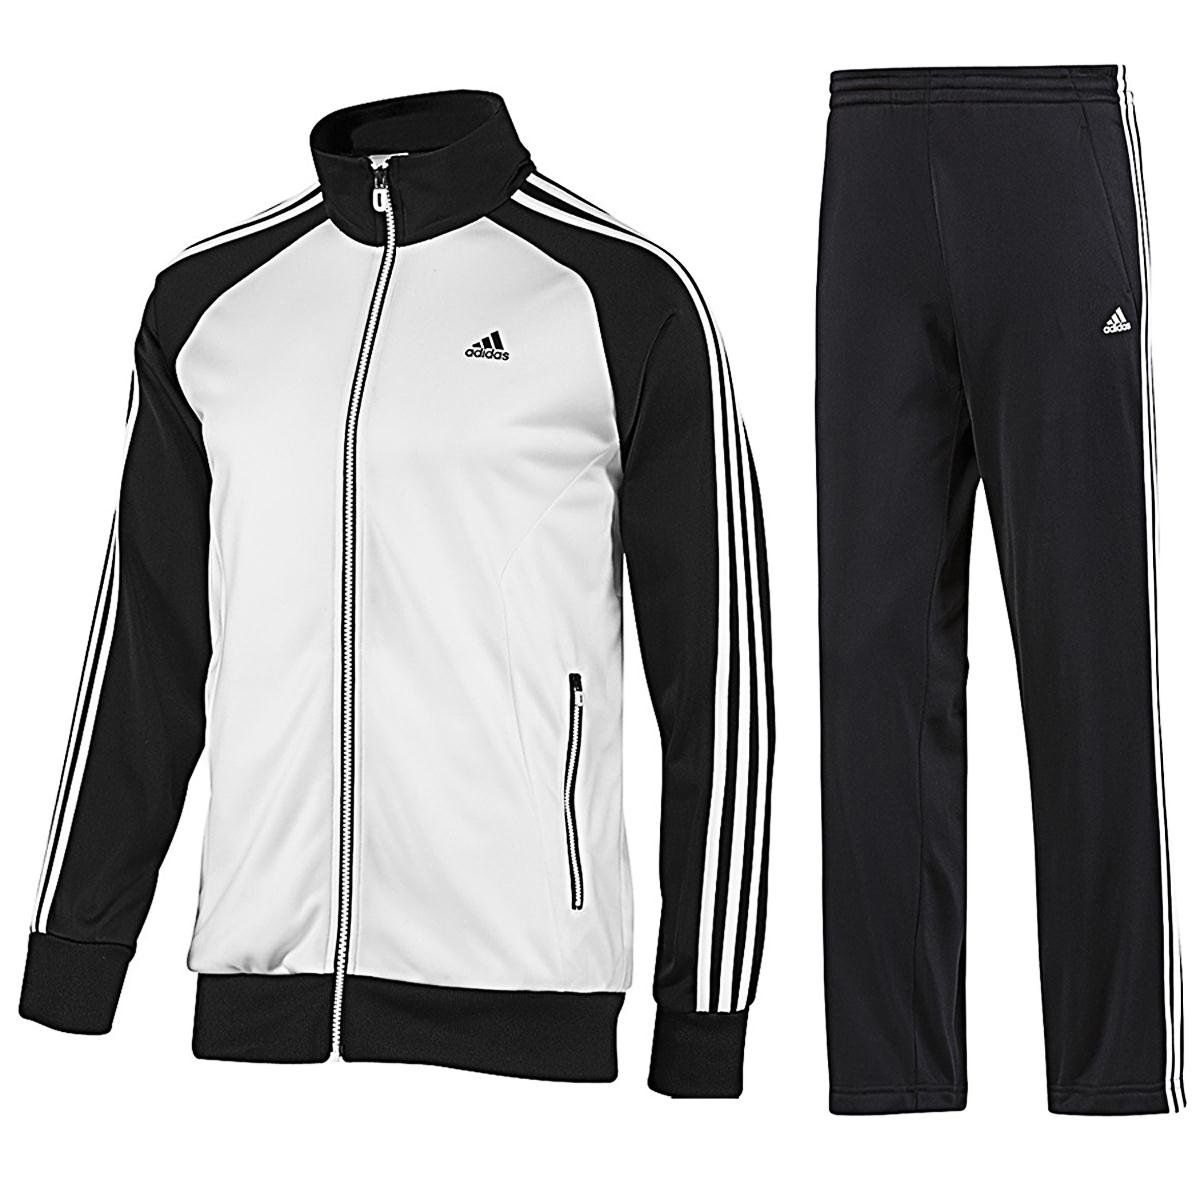 579270ae1b952 Adidas Mens Tracksuit JogSuit 3S Riberio Retro Black/White Navy/Red ...